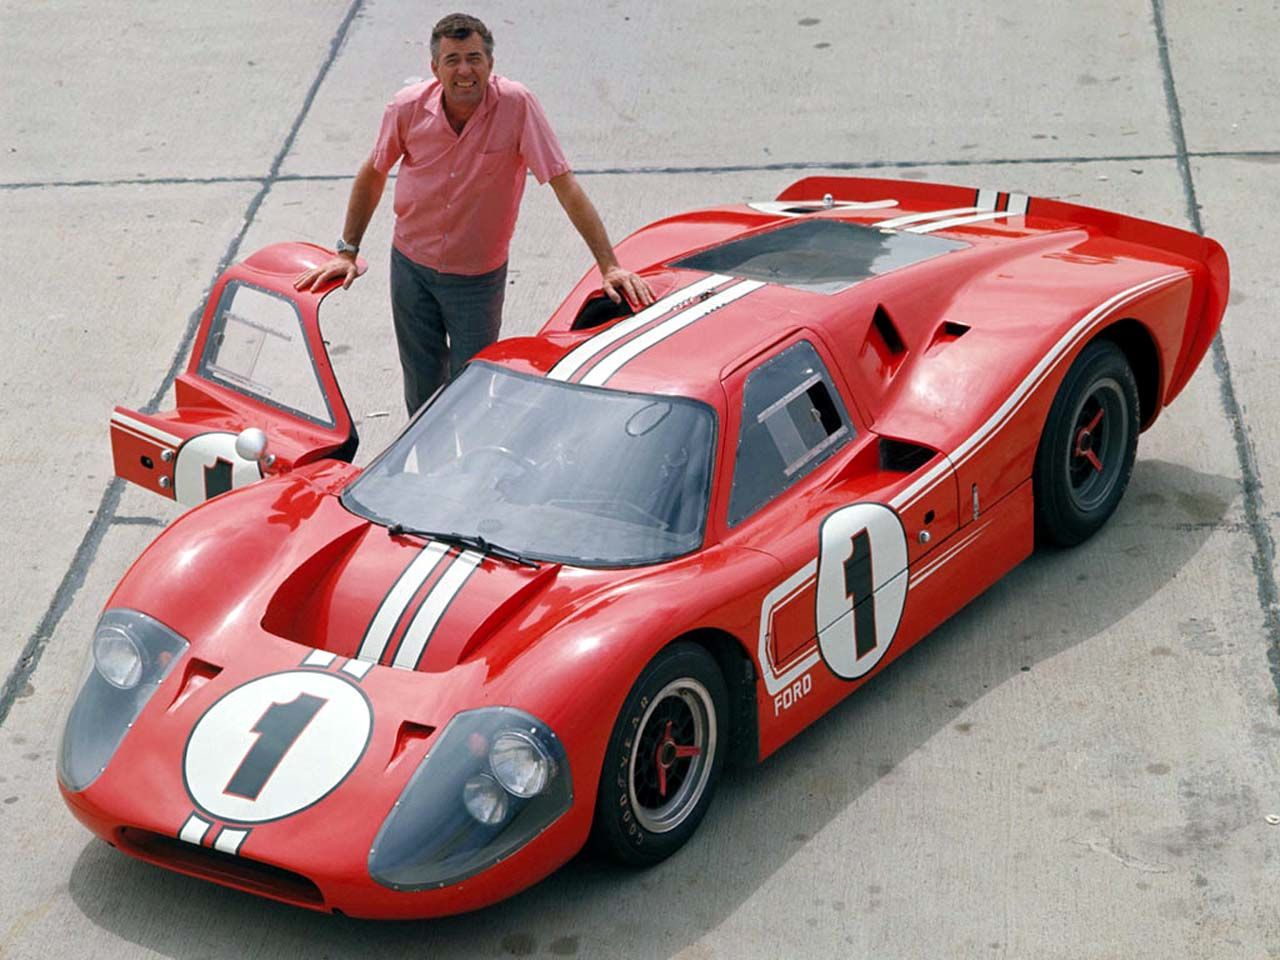 When Carroll Shelby turned down a ride from Enzo Ferrari